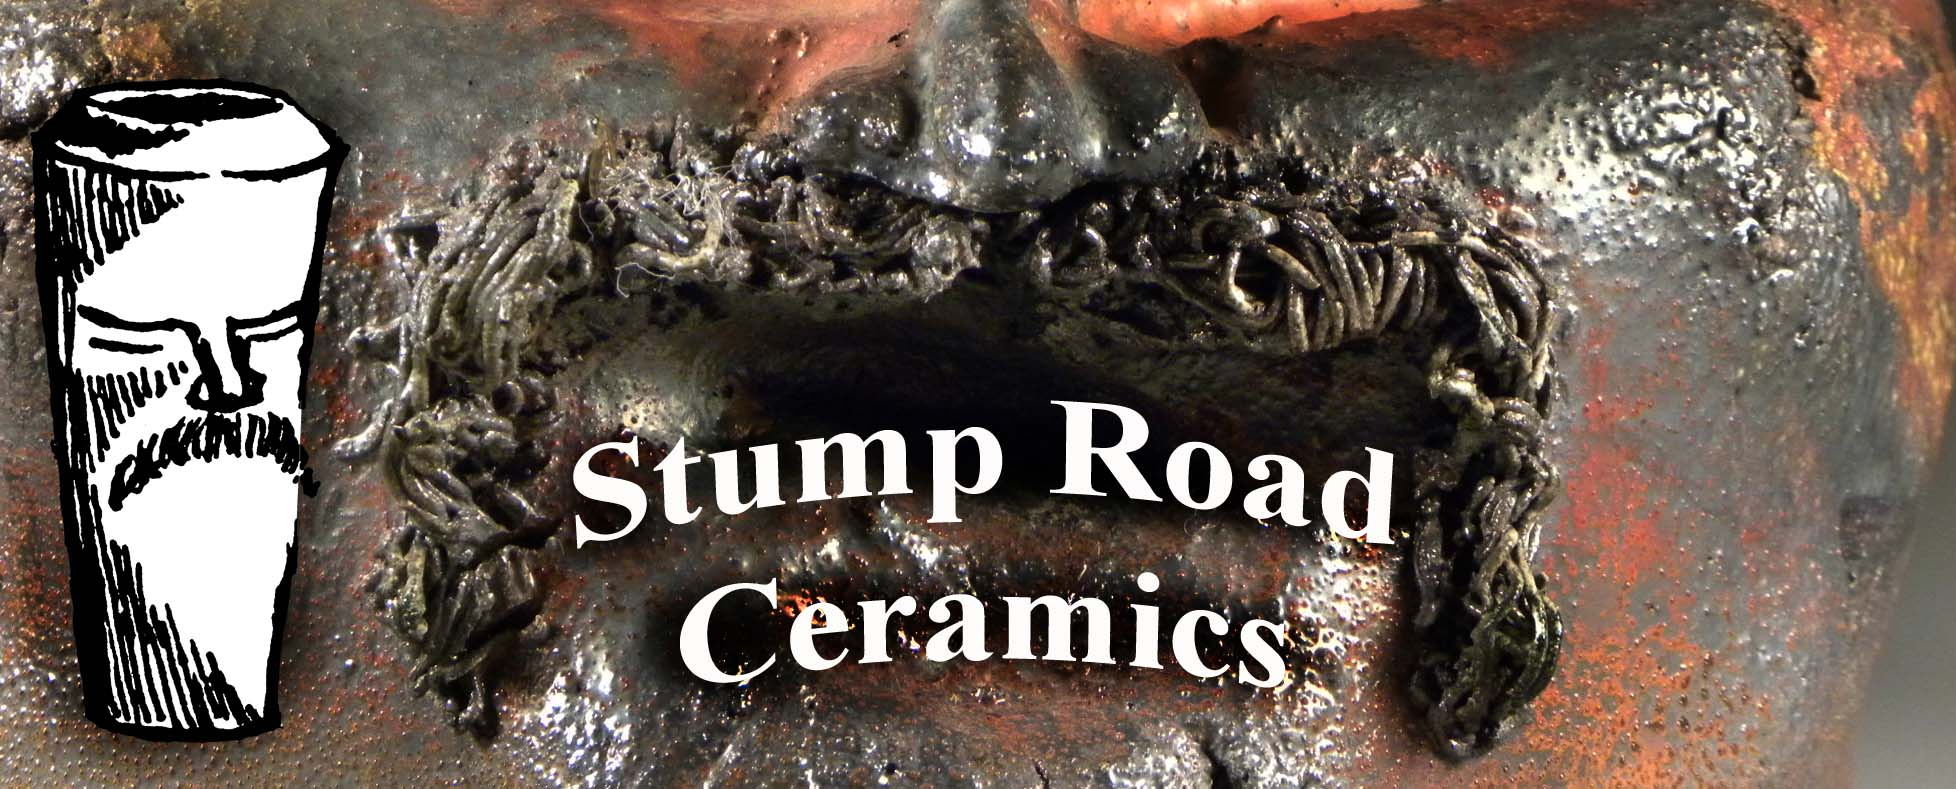 Stump Road Ceramics